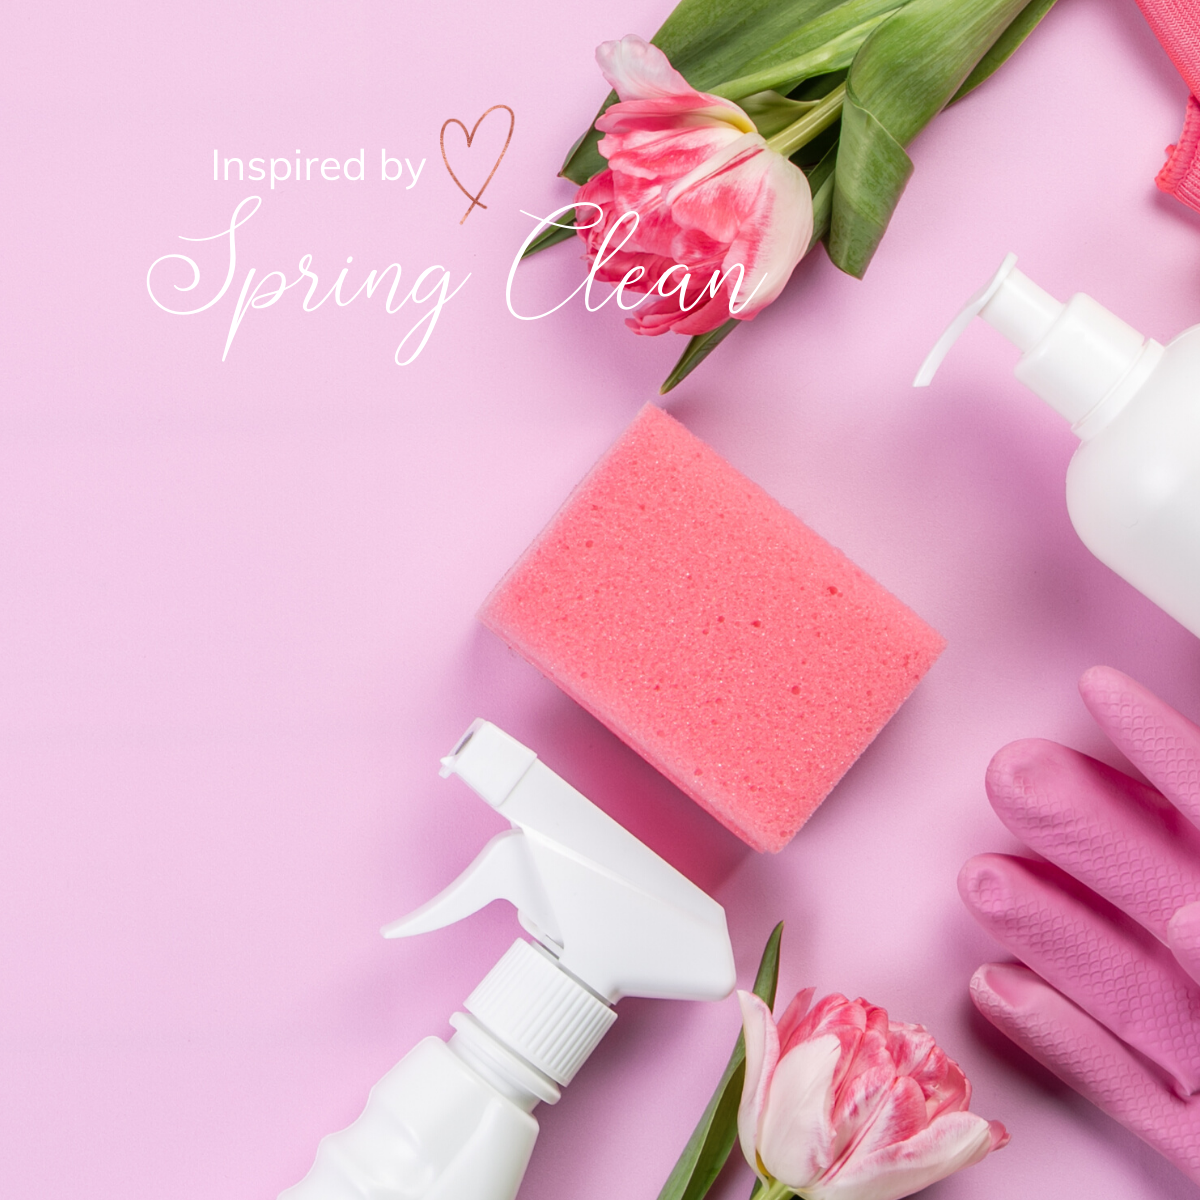 Spring Clean Inspired Wax Melts